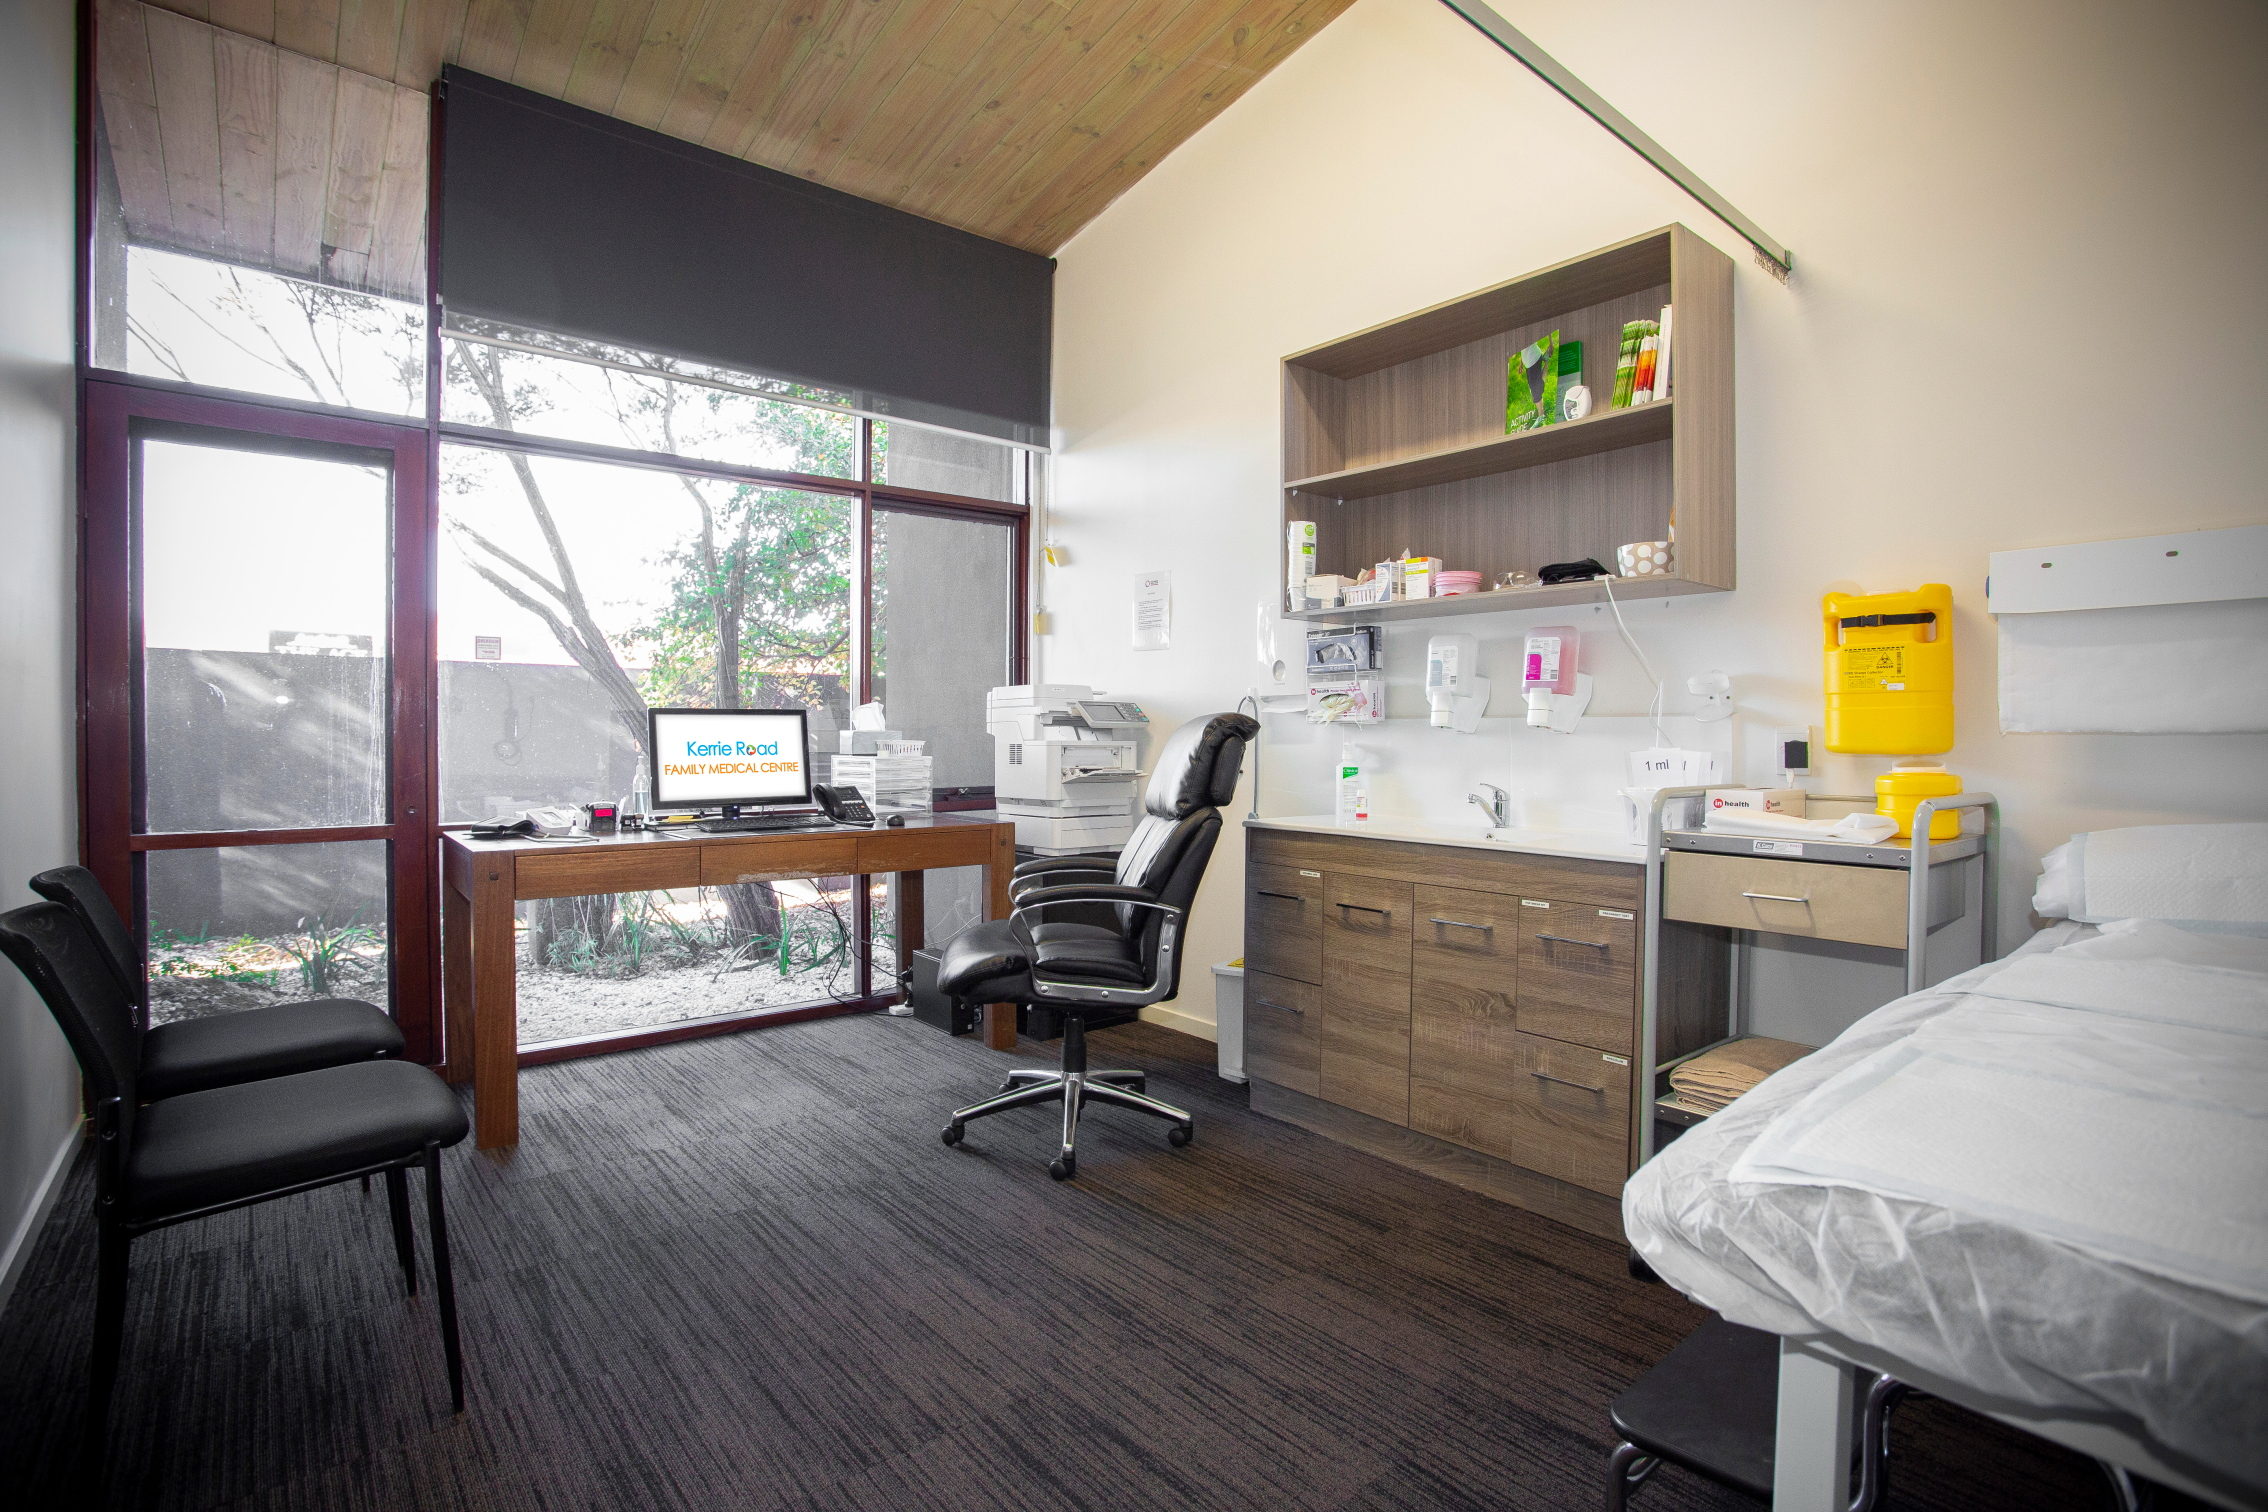 Kerrie Road Family Medical Centre